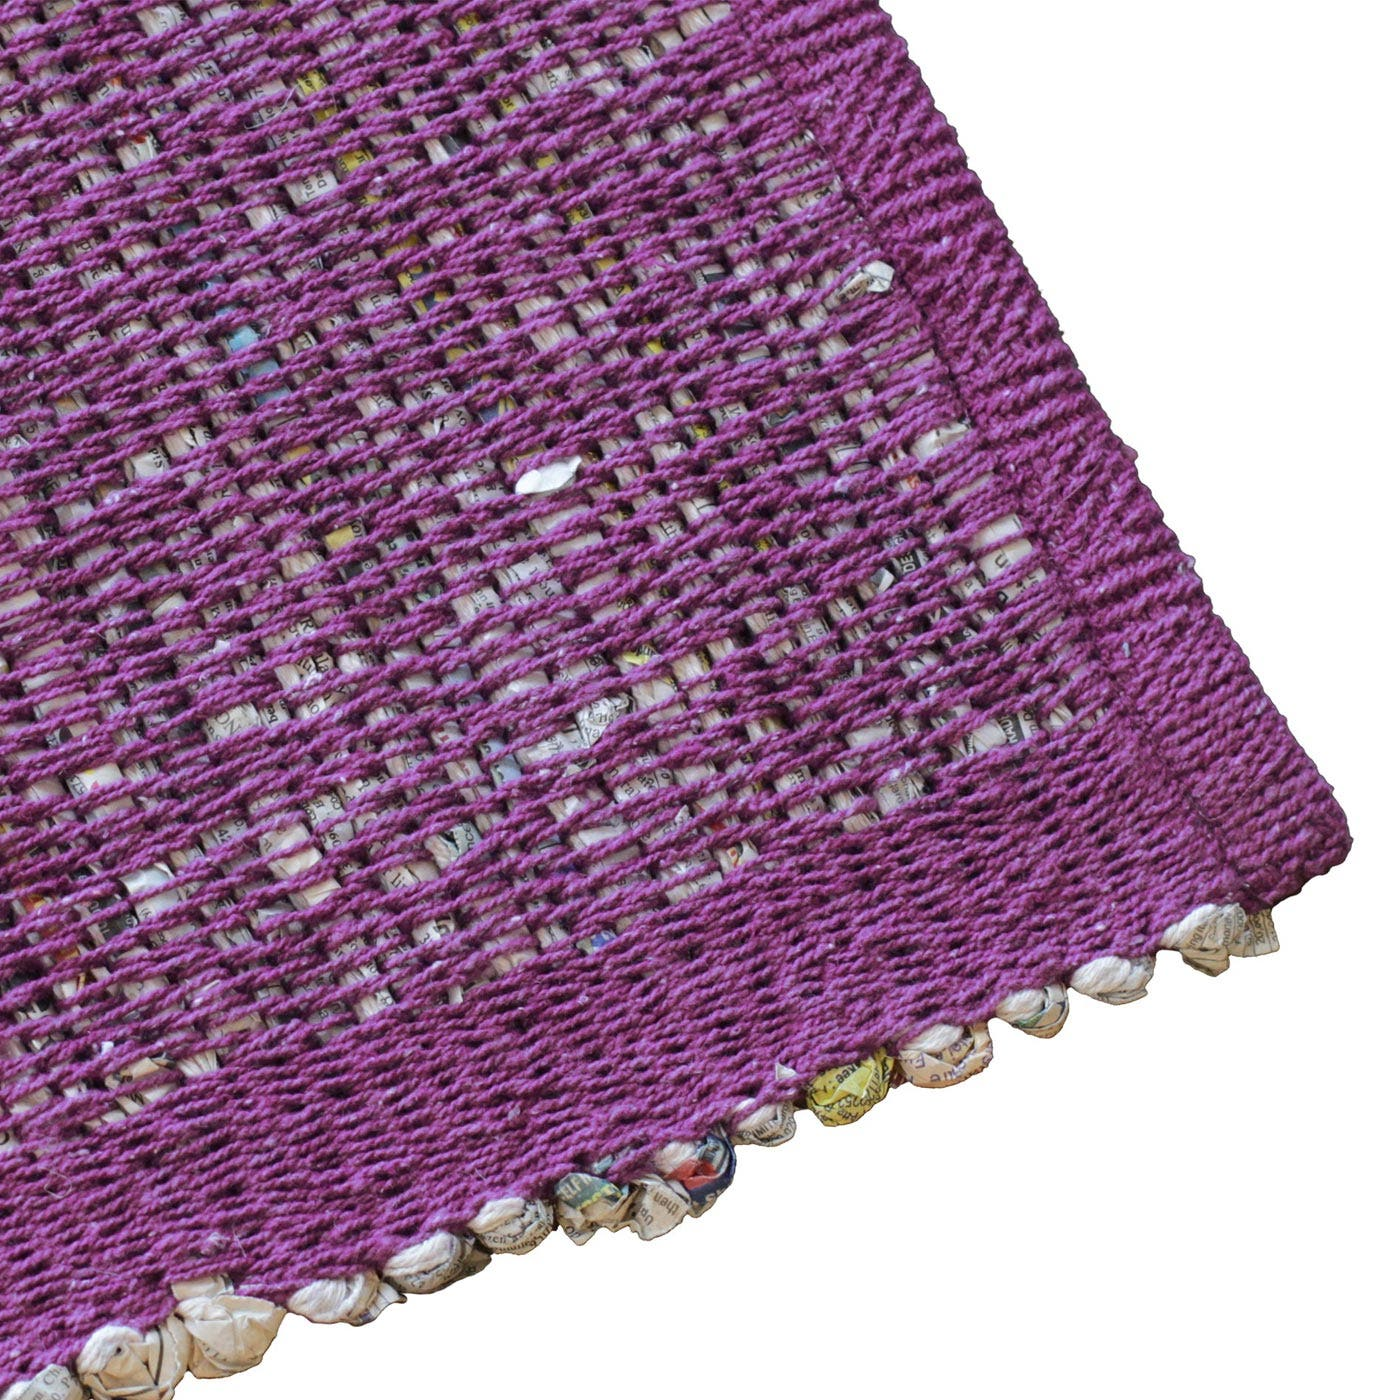 Previous Image Last Newspaper   6u0027 X 9u0027 Rug   Purple ...